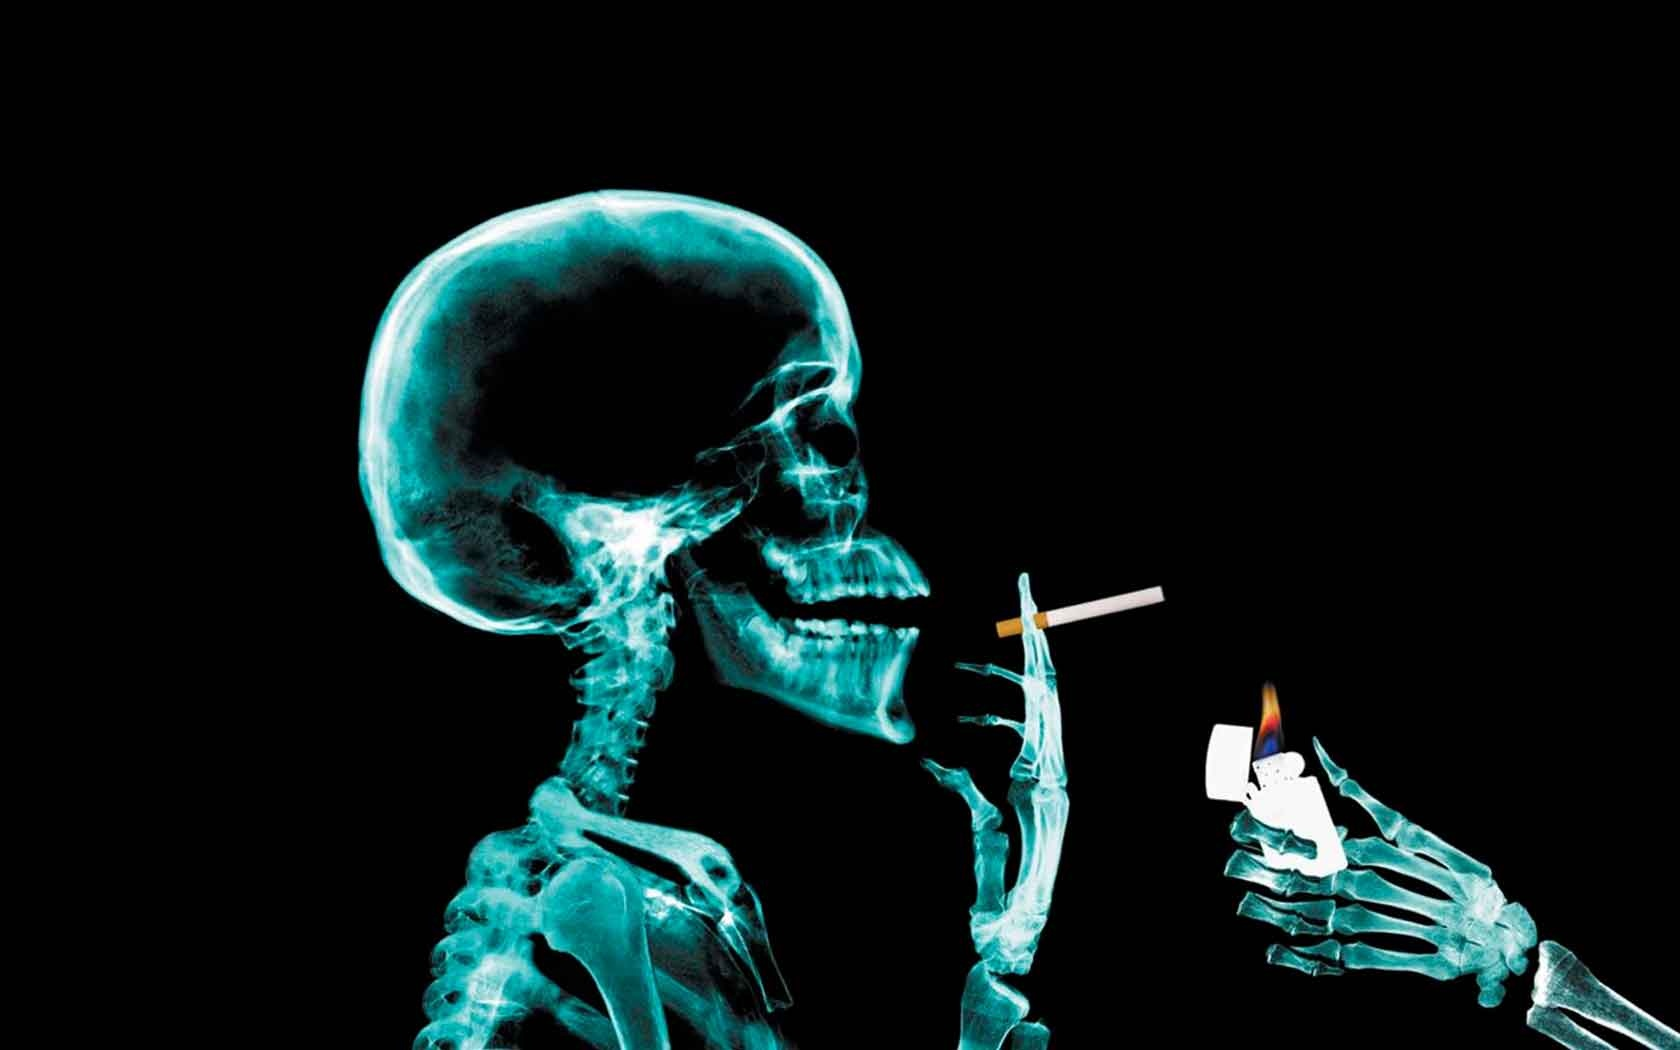 Xray Music Wallpapers: 1680x1050 The Last Cigarette Wallpaper, Music And Dance